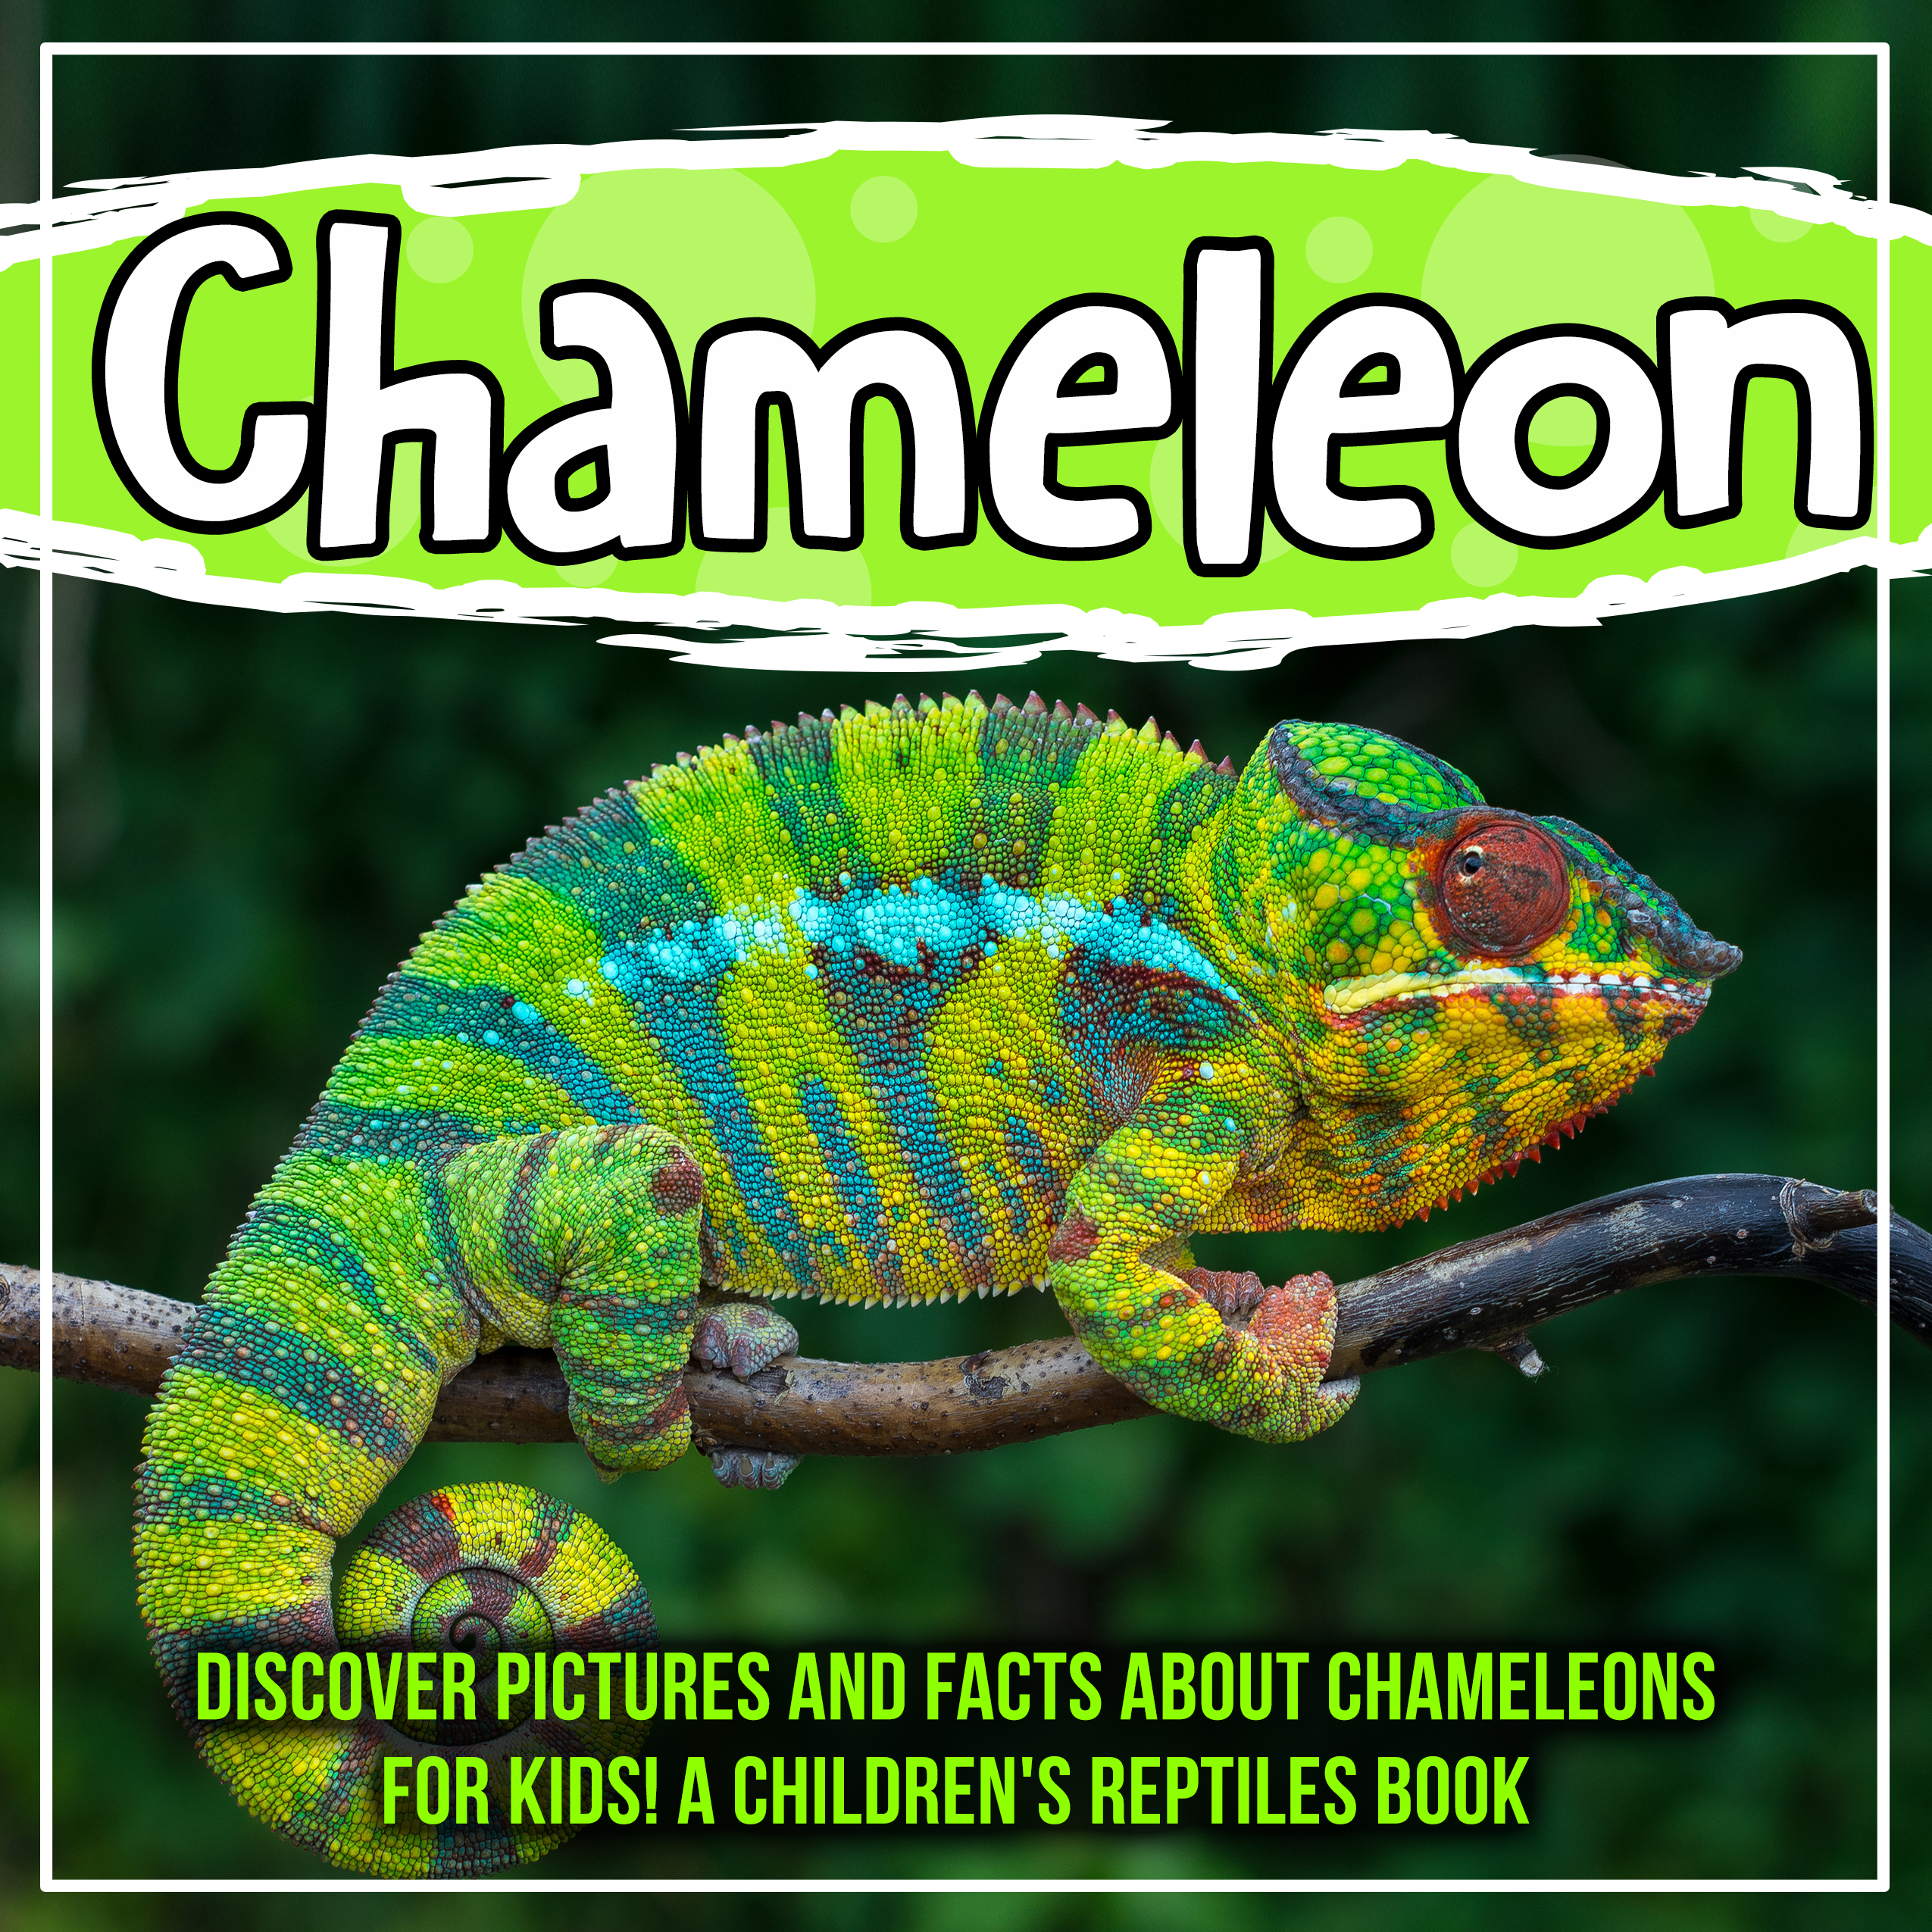 Chameleon: Discover Pictures and Facts About Cheamelons For Kids! A Children's Reptiles Book